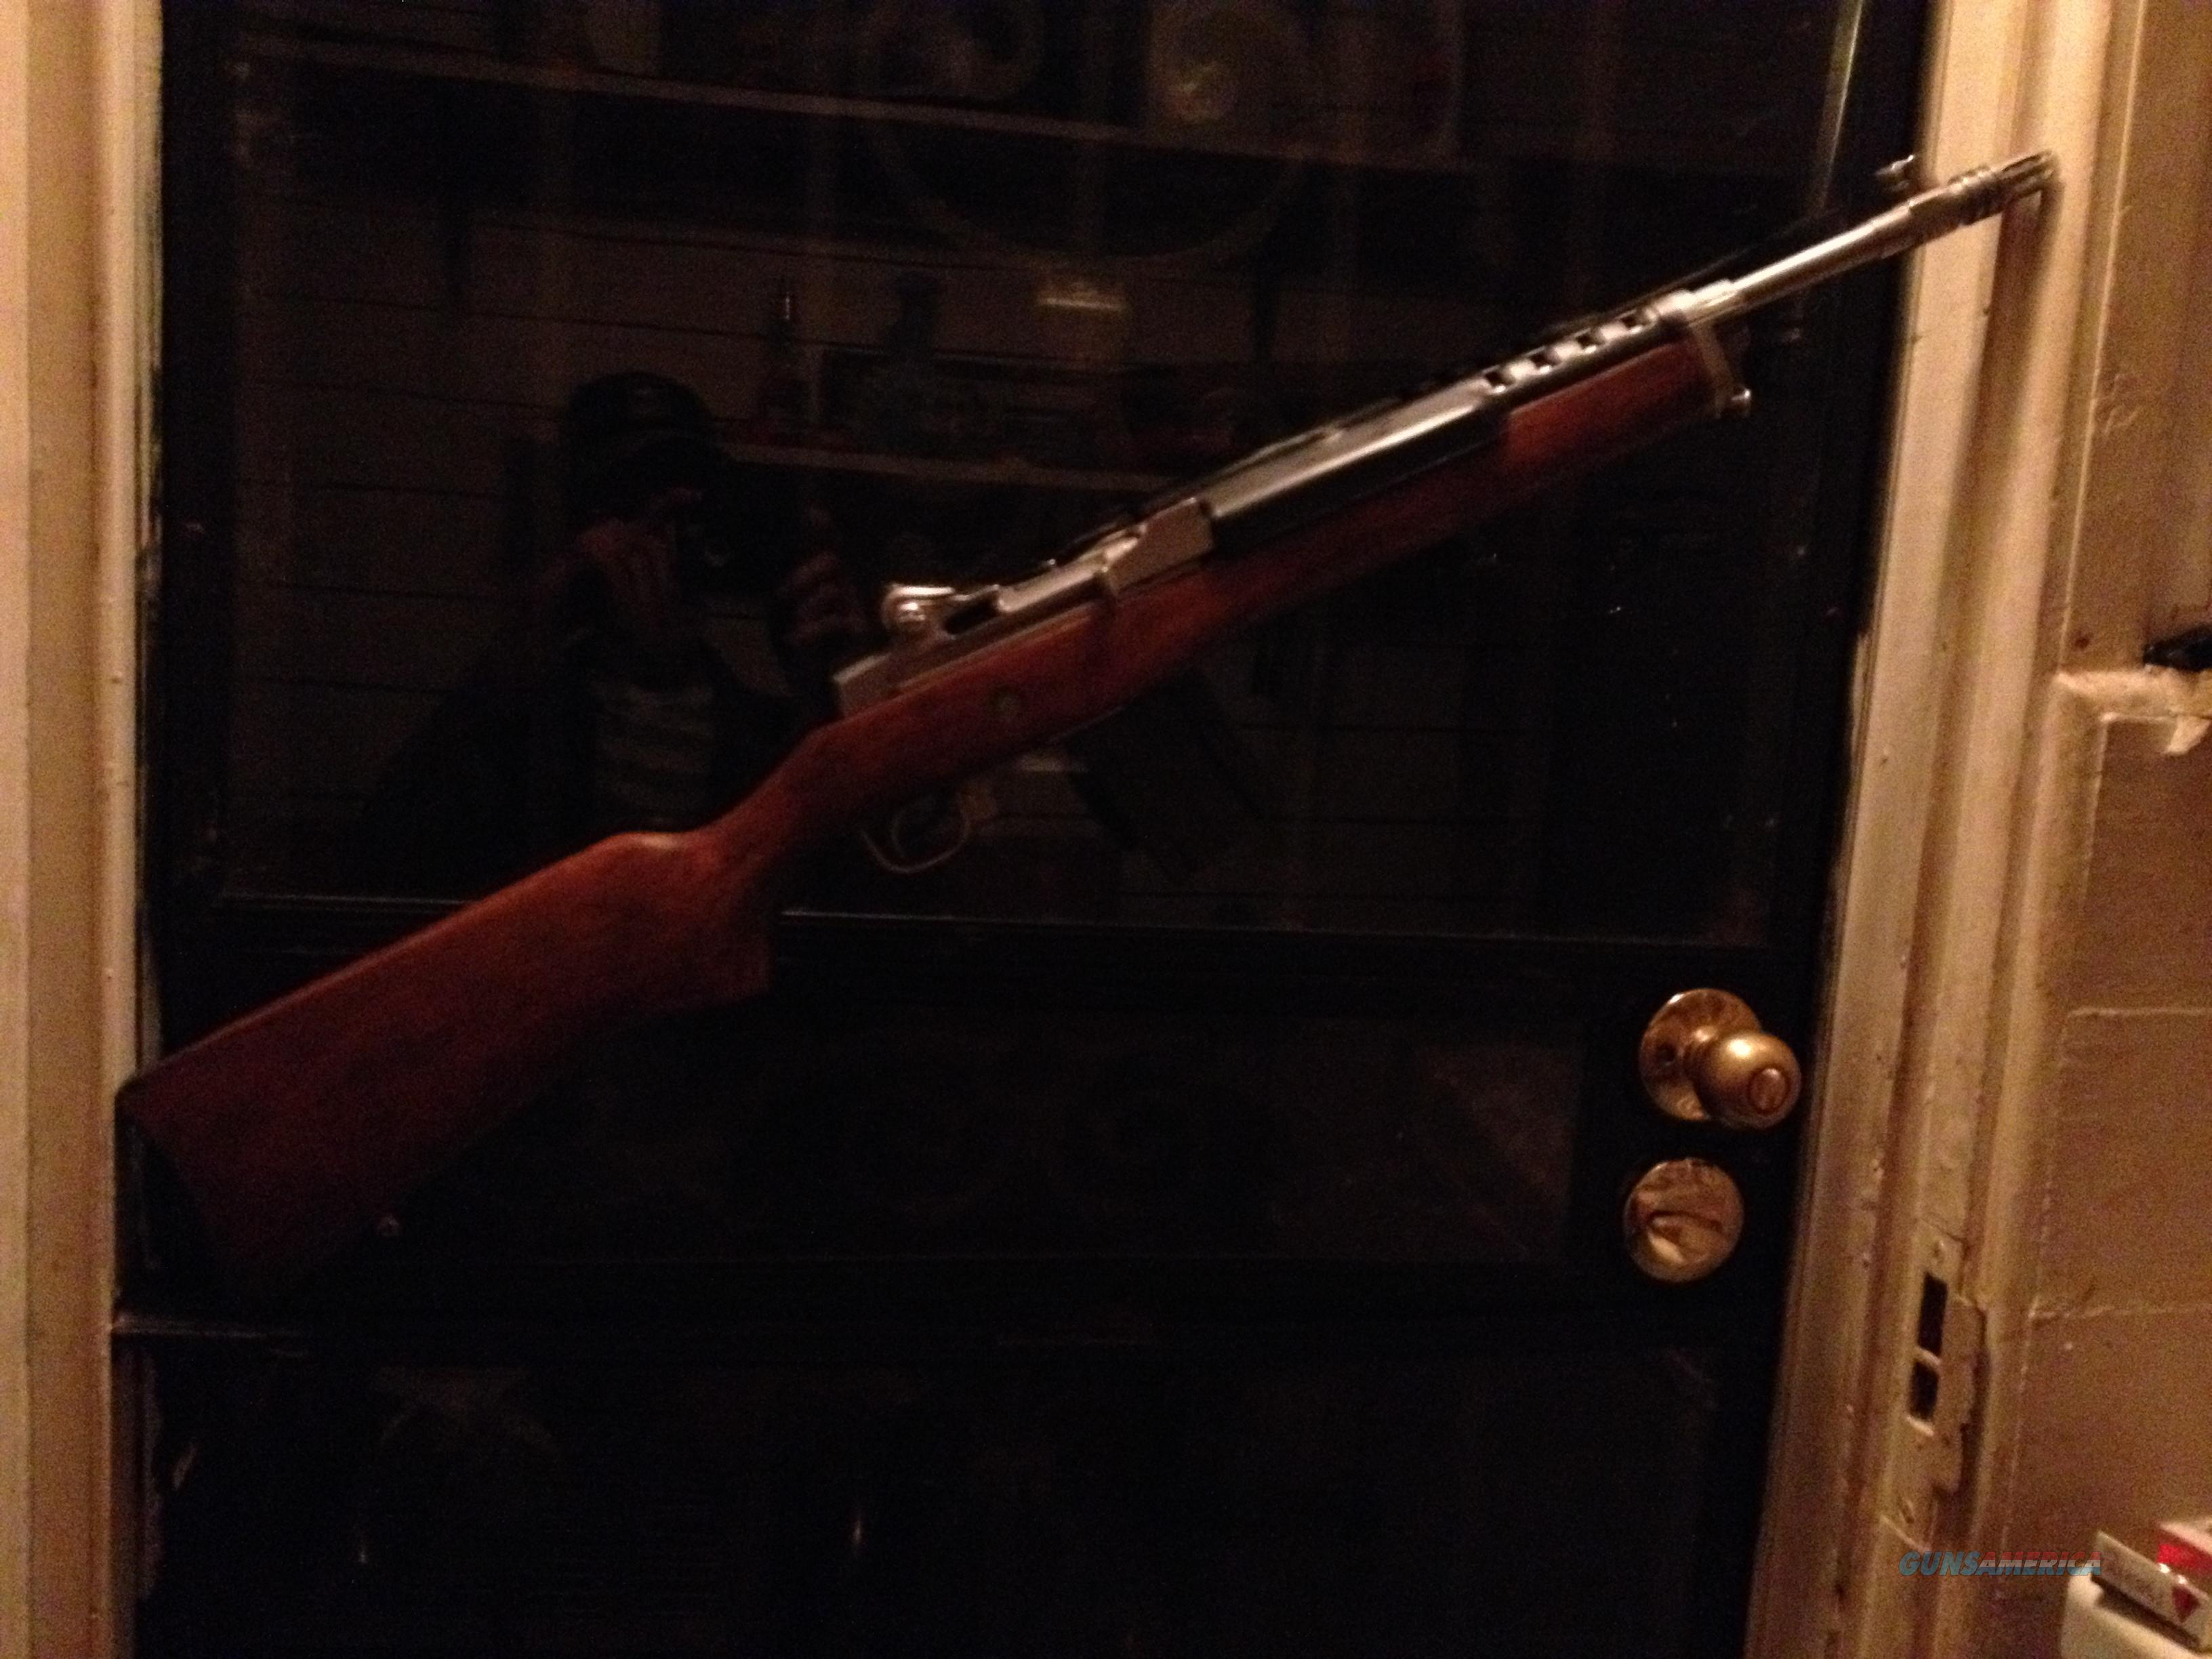 Ruger Mini-14 Stainless Steel Ranch Rifle......OBO  Guns > Rifles > Ruger Rifles > Mini-14 Type